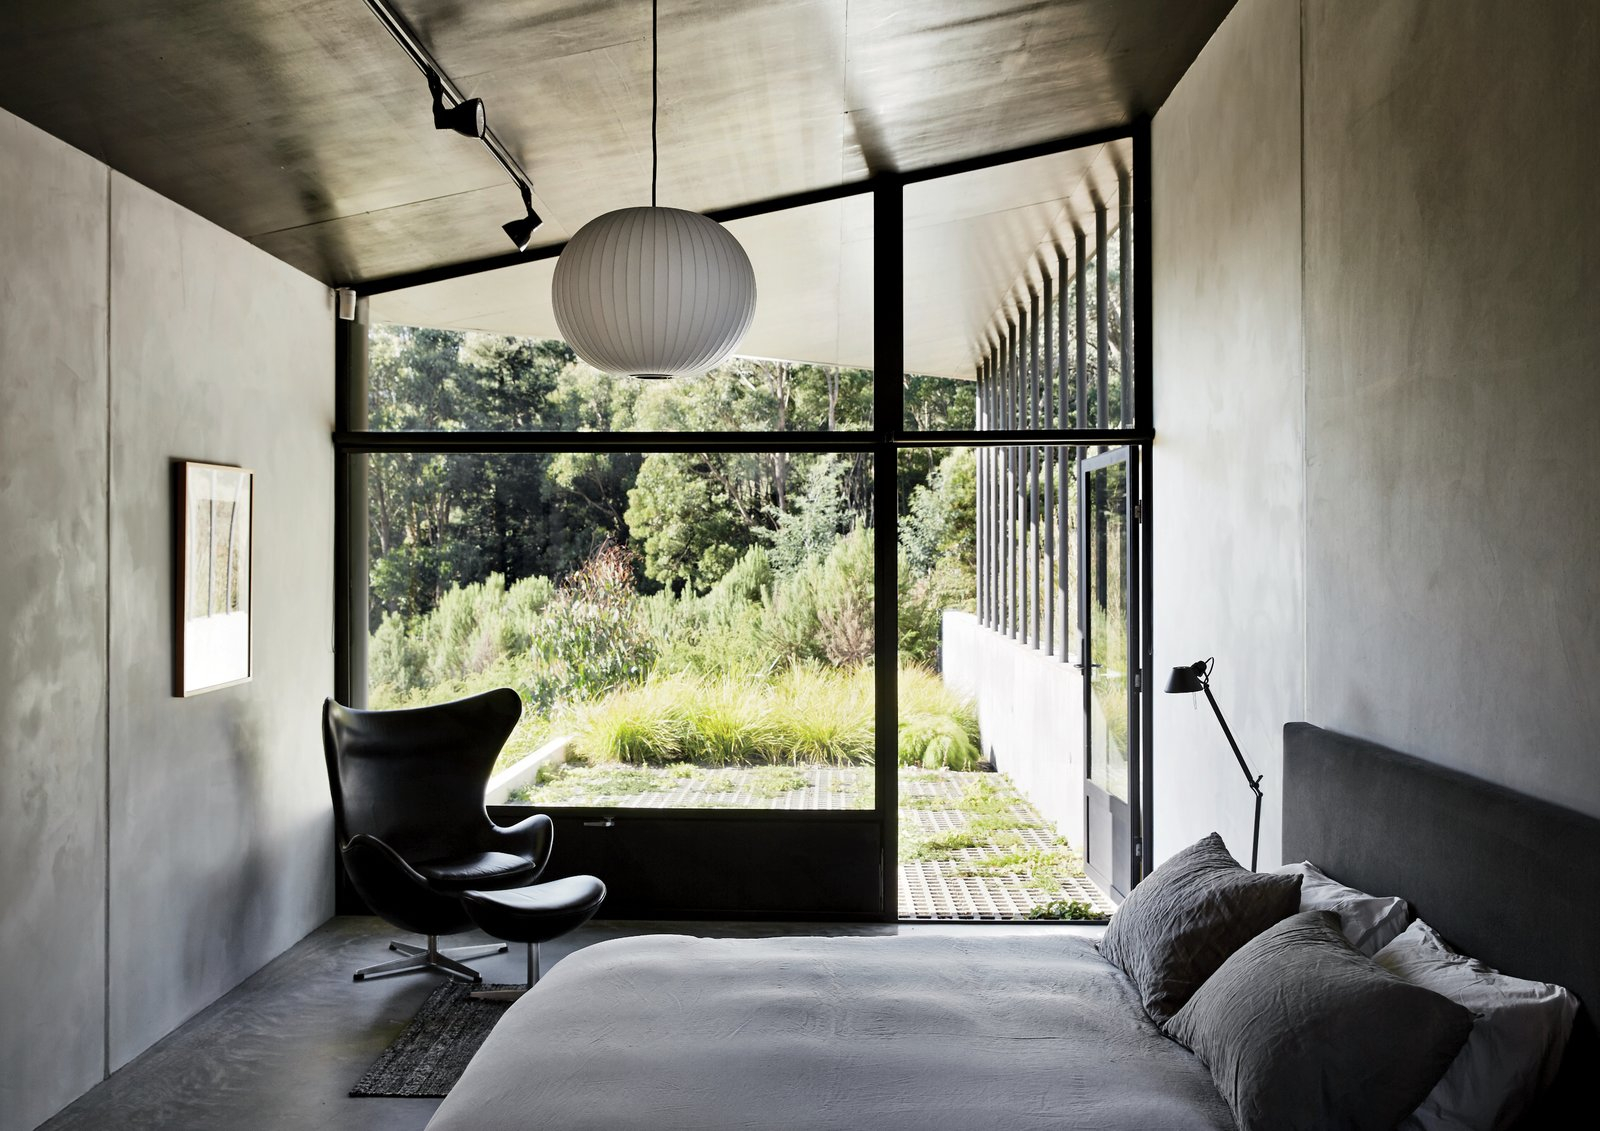 The master bedroom, which features a bed by Paolo Piva, an Egg chair by Arne Jacobsen, and a Ball pendant lamp by George Nelson, opens directly onto a verdant patio. The metal shutters at the bottom of the window keep out flying embers in case of fire. Tagged: Bedroom, Lamps, Bed, Chair, Table Lighting, Ceiling Lighting, and Pendant Lighting.  Photo 6 of 10 in Richly Furnished Home Frames Striking Landscape Views